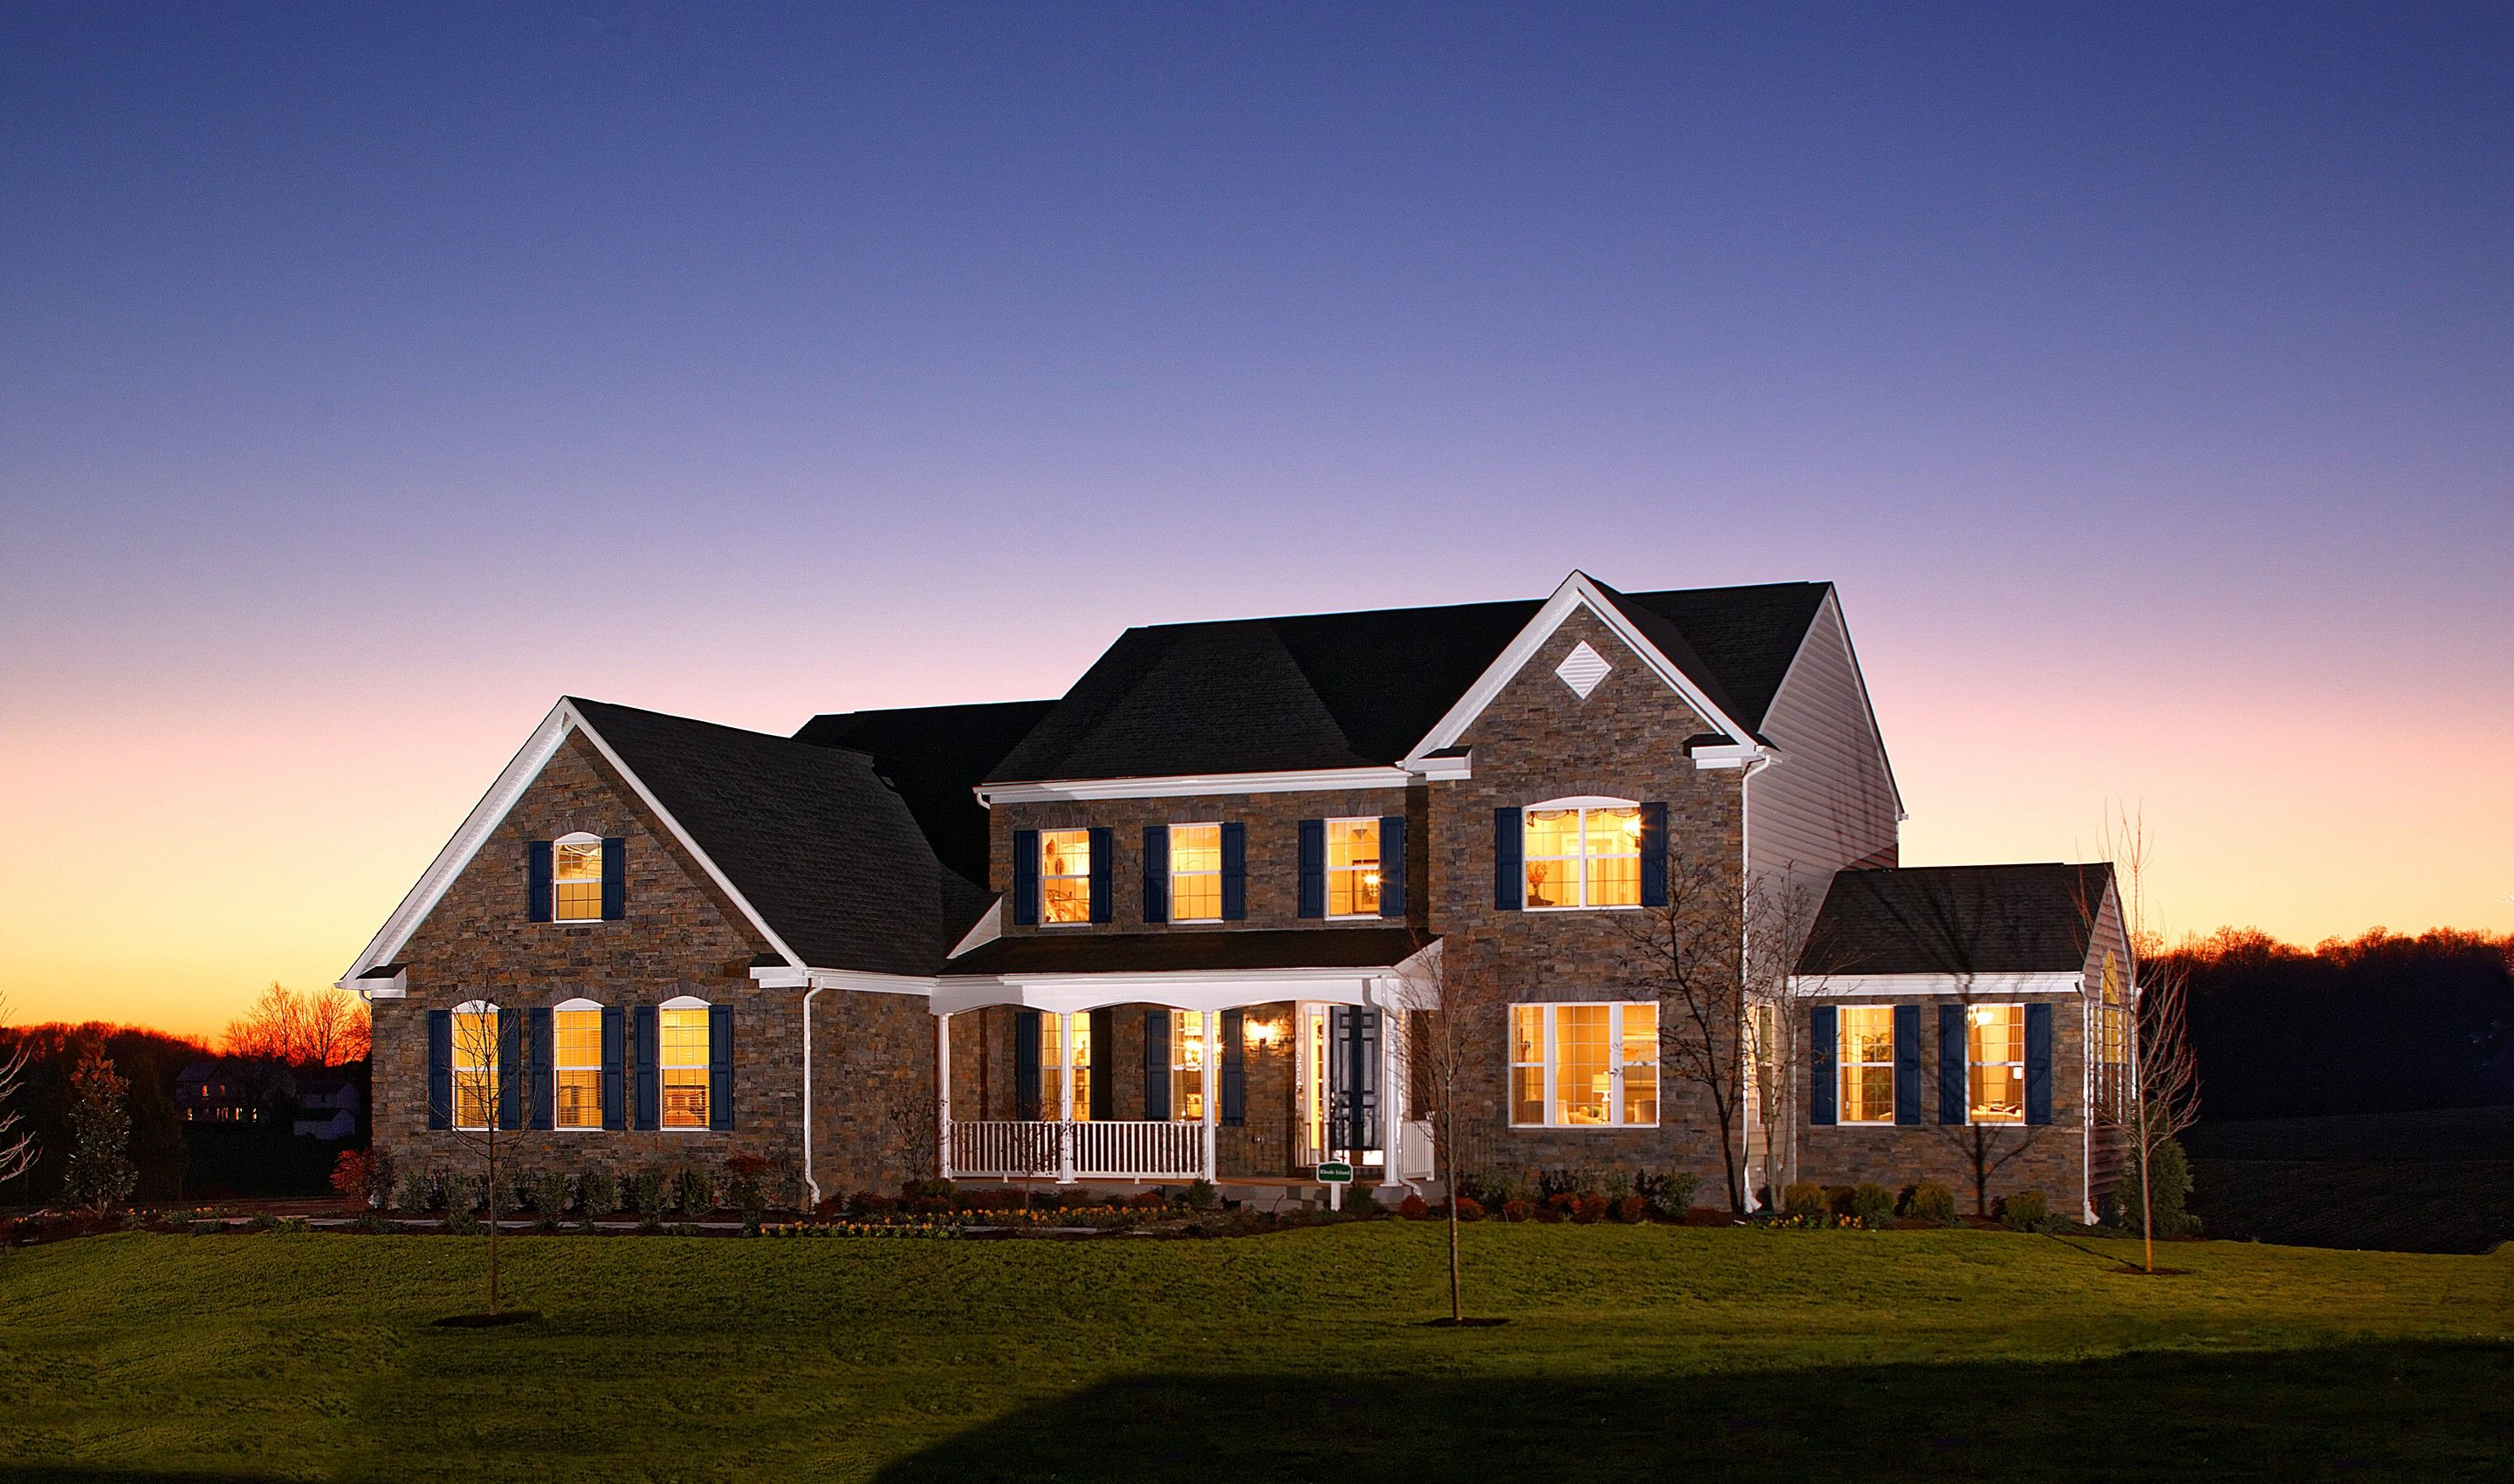 Single Family for Active at Colorado 1304 Merlot Drive Bel Air, Maryland 21015 United States